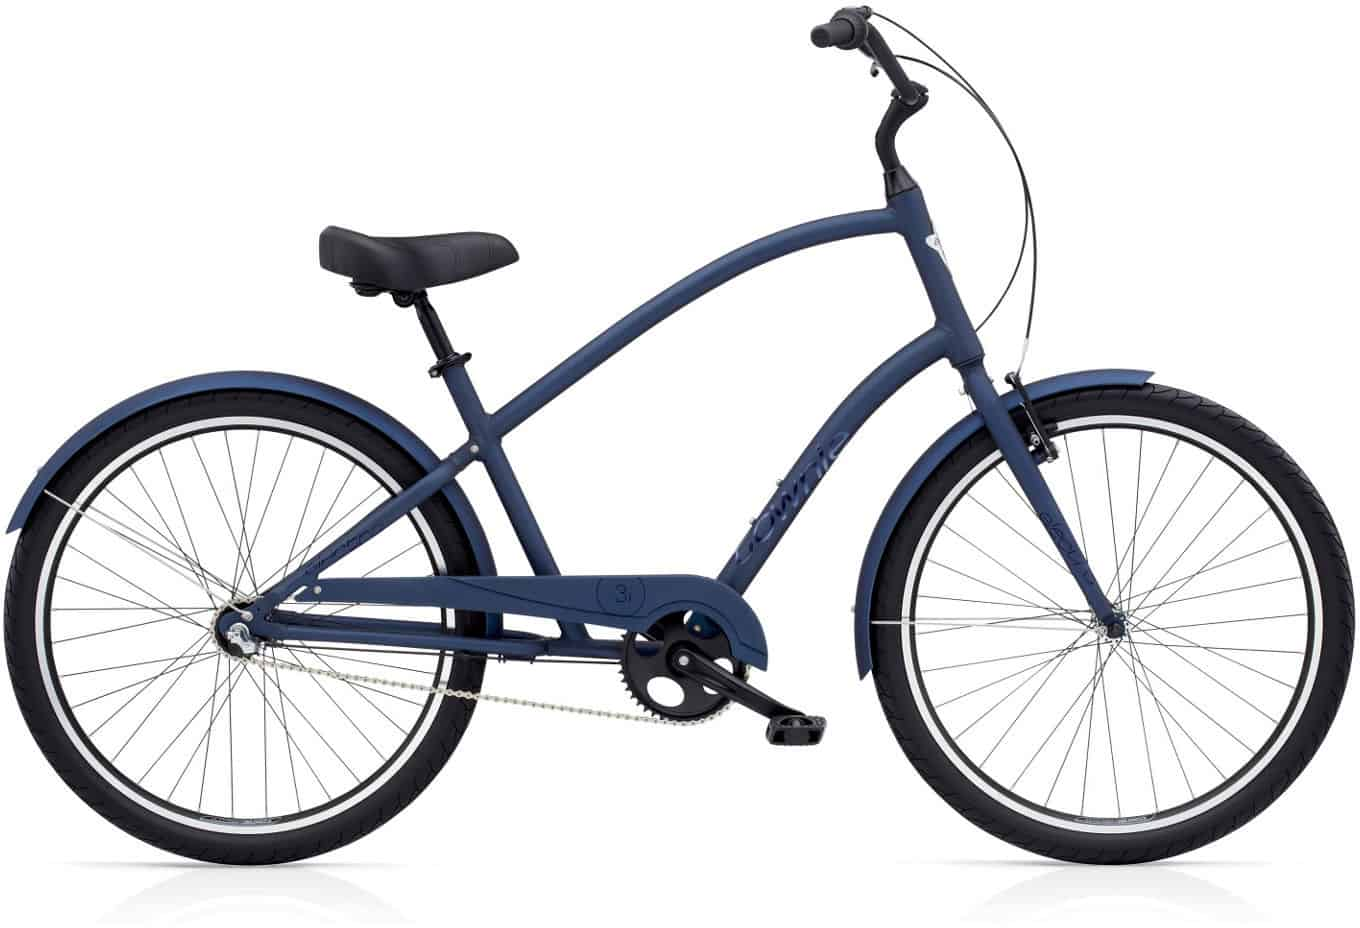 electra-townie-original-3i-copy-209606-11